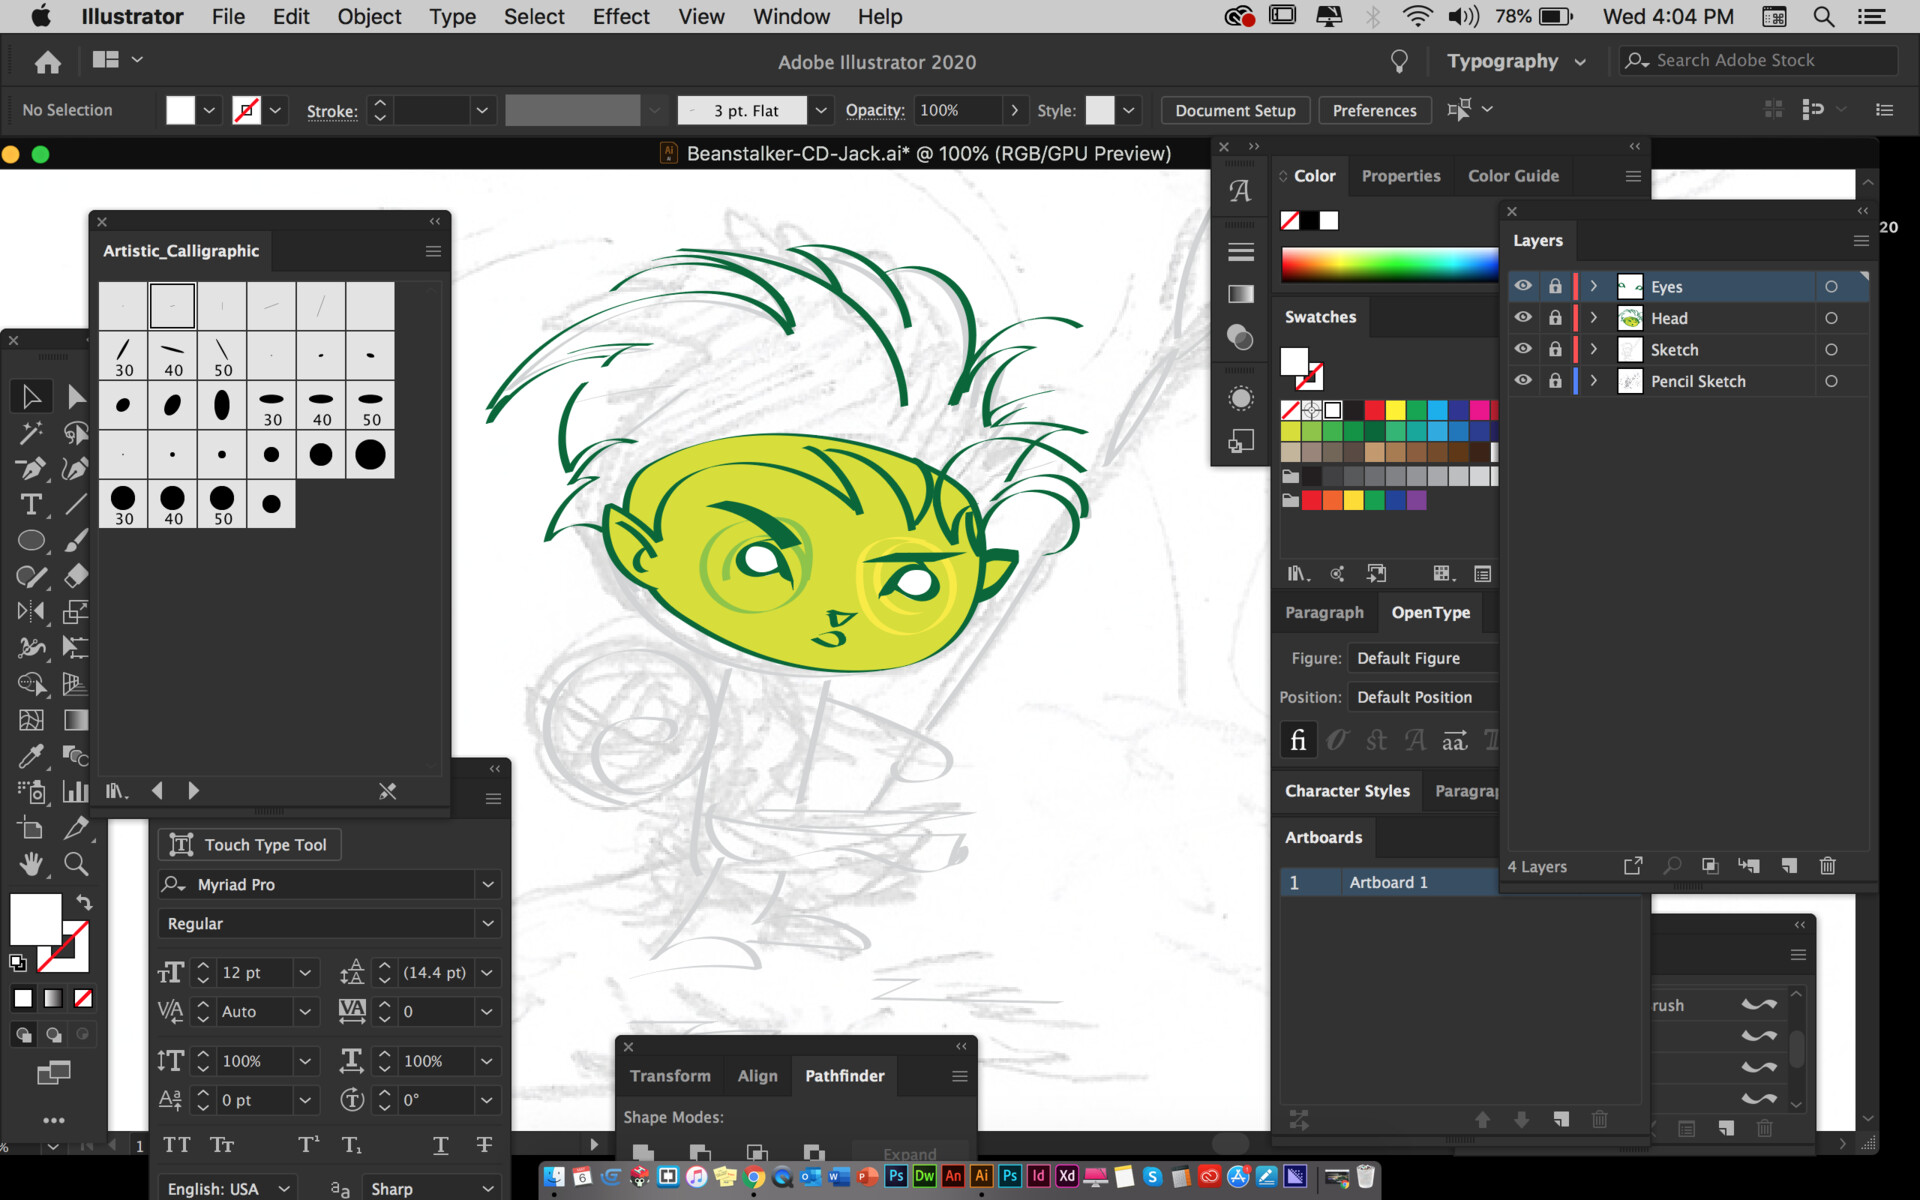 Refining the character.... Green, nah.